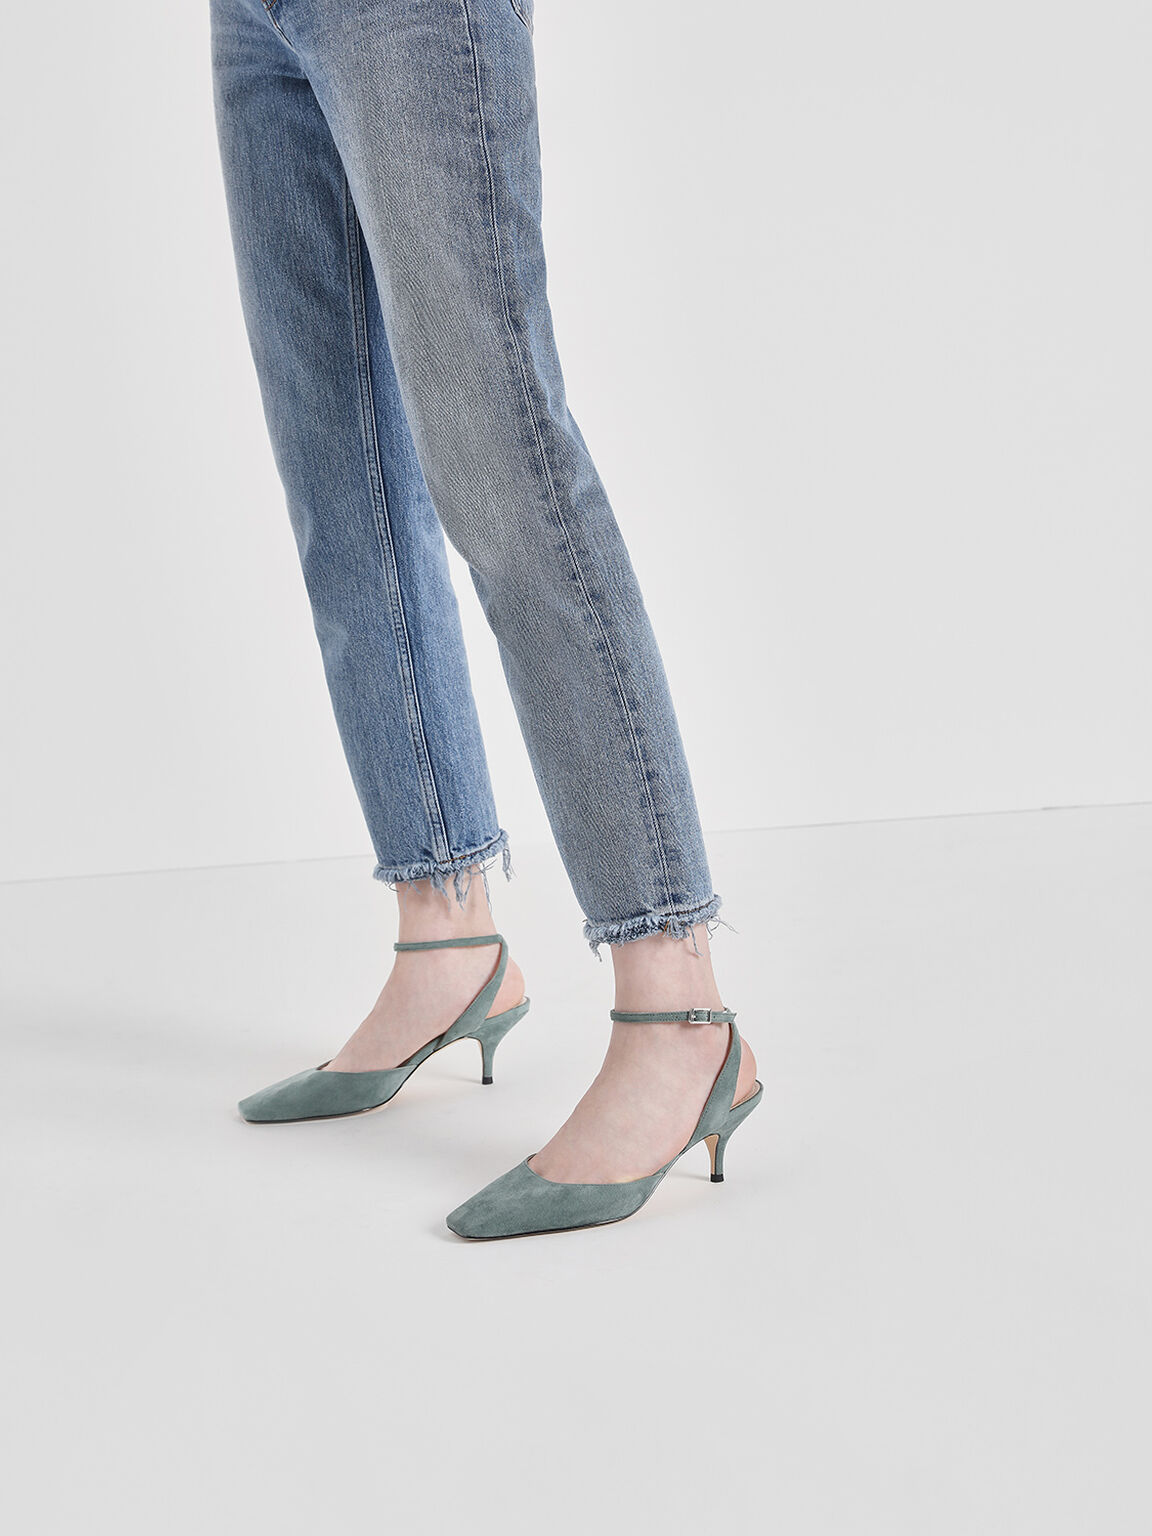 Square Toe Ankle Strap Heels, Mint Green, hi-res